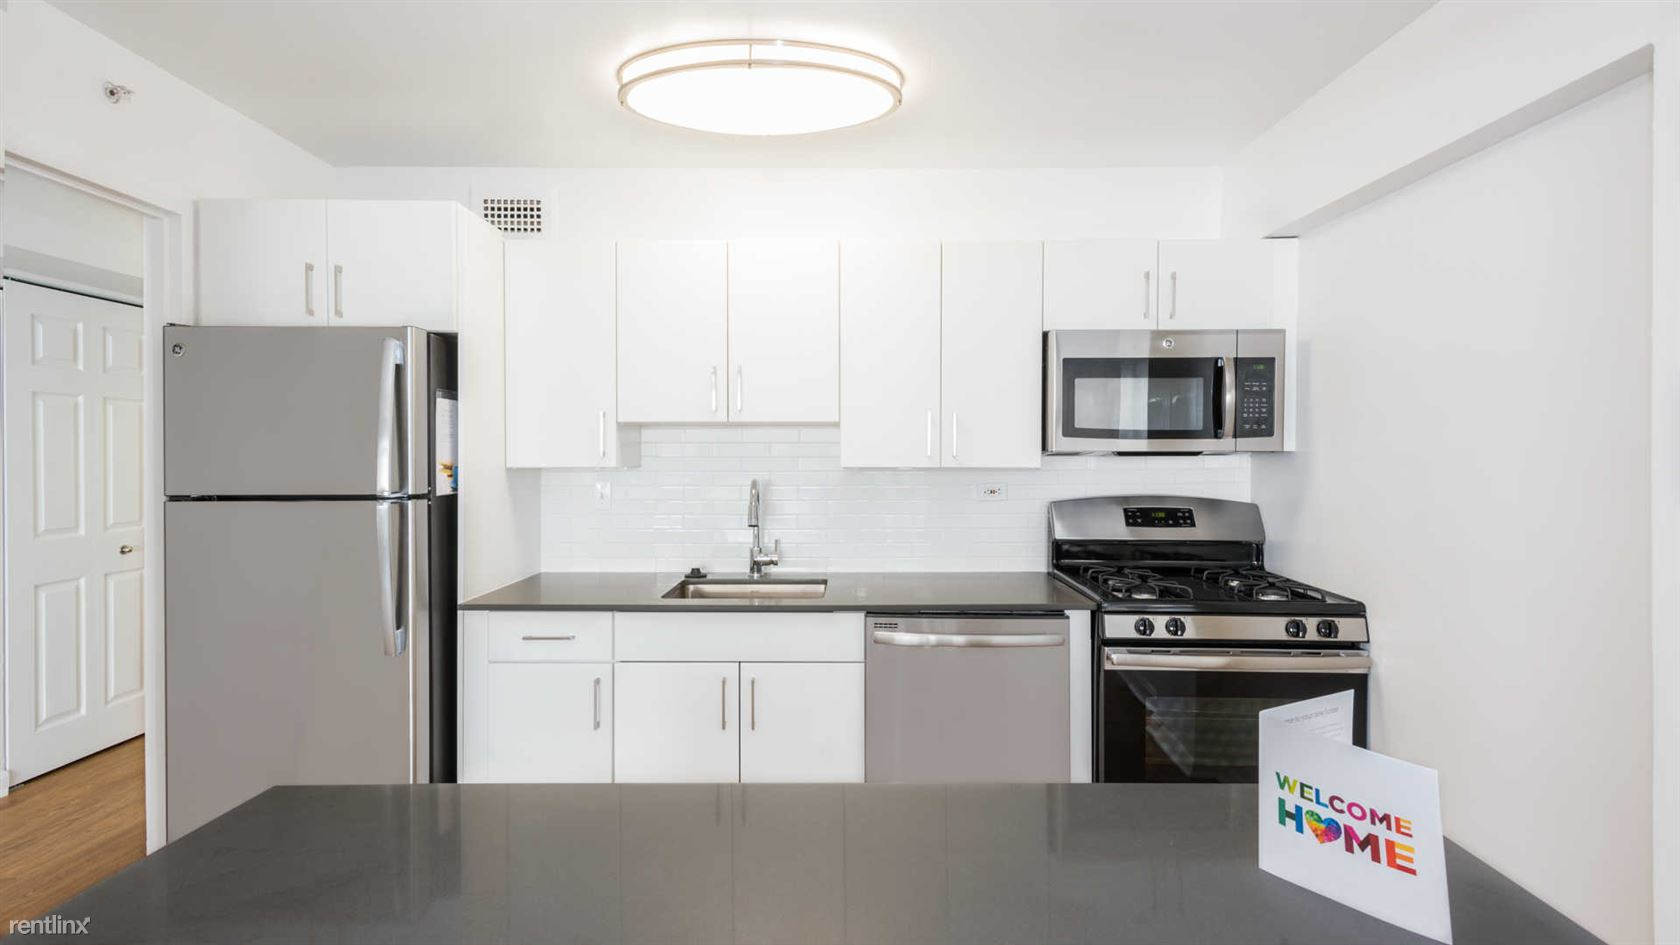 100 Blossom St - 2500USD / month